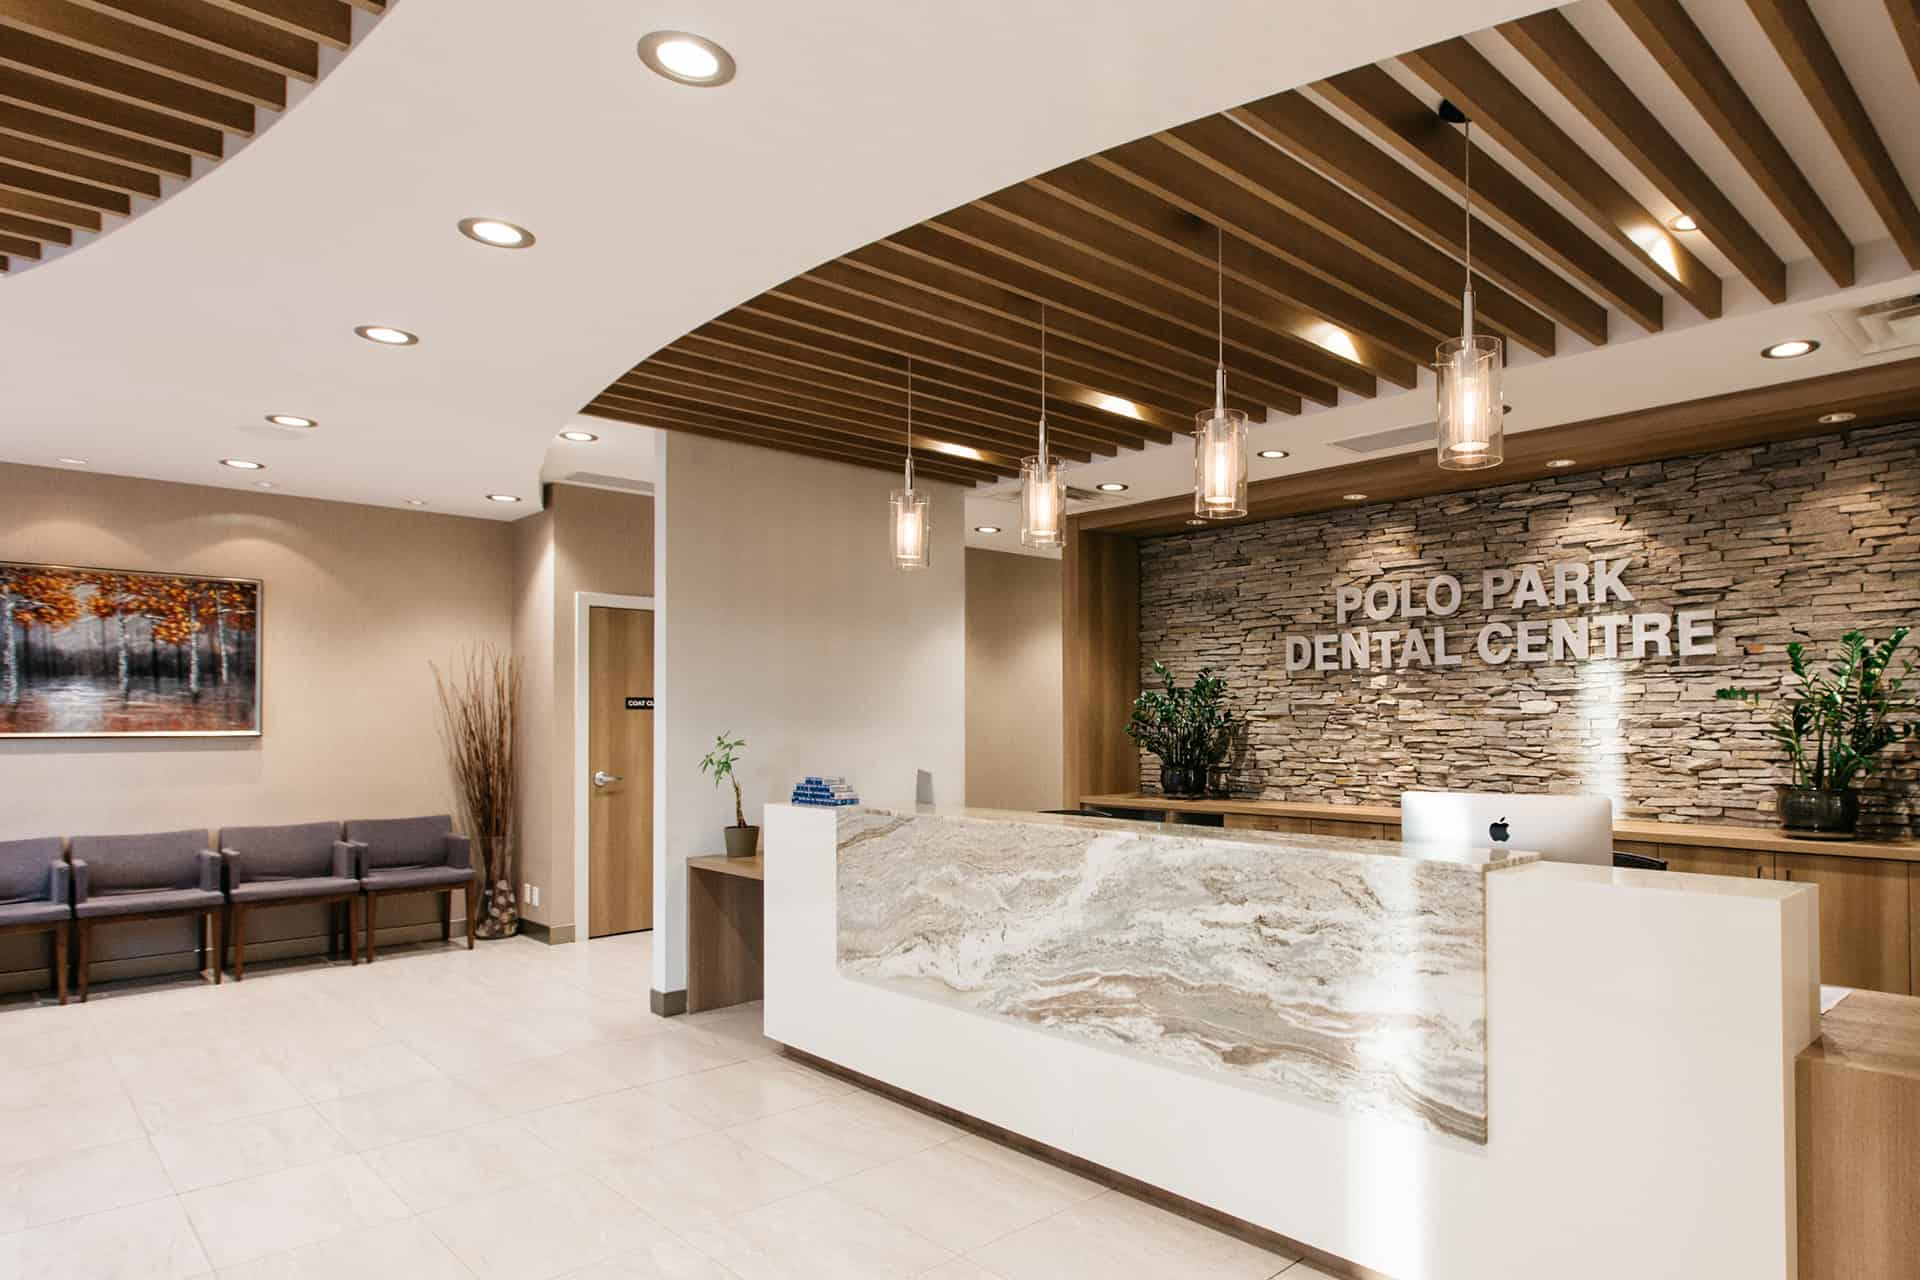 PoloPark Dental Centre Lobby